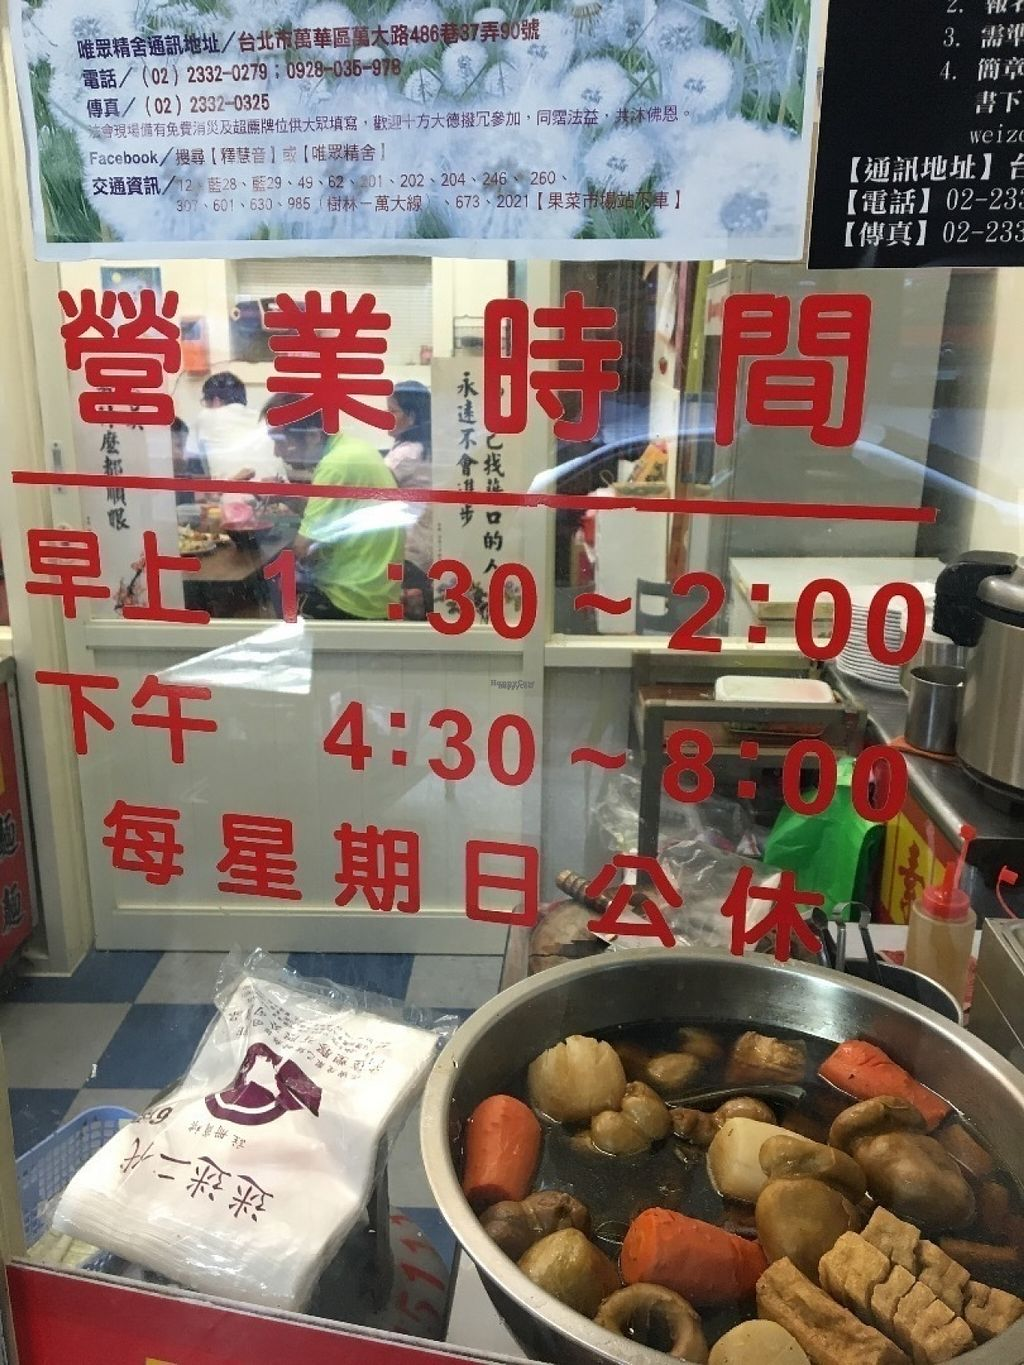 "Photo of Master Wang Vegetarian Restaurant  by <a href=""/members/profile/phillipguy"">phillipguy</a> <br/>You can see the small seating inside and the time schedule <br/> August 14, 2016  - <a href='/contact/abuse/image/78577/168430'>Report</a>"